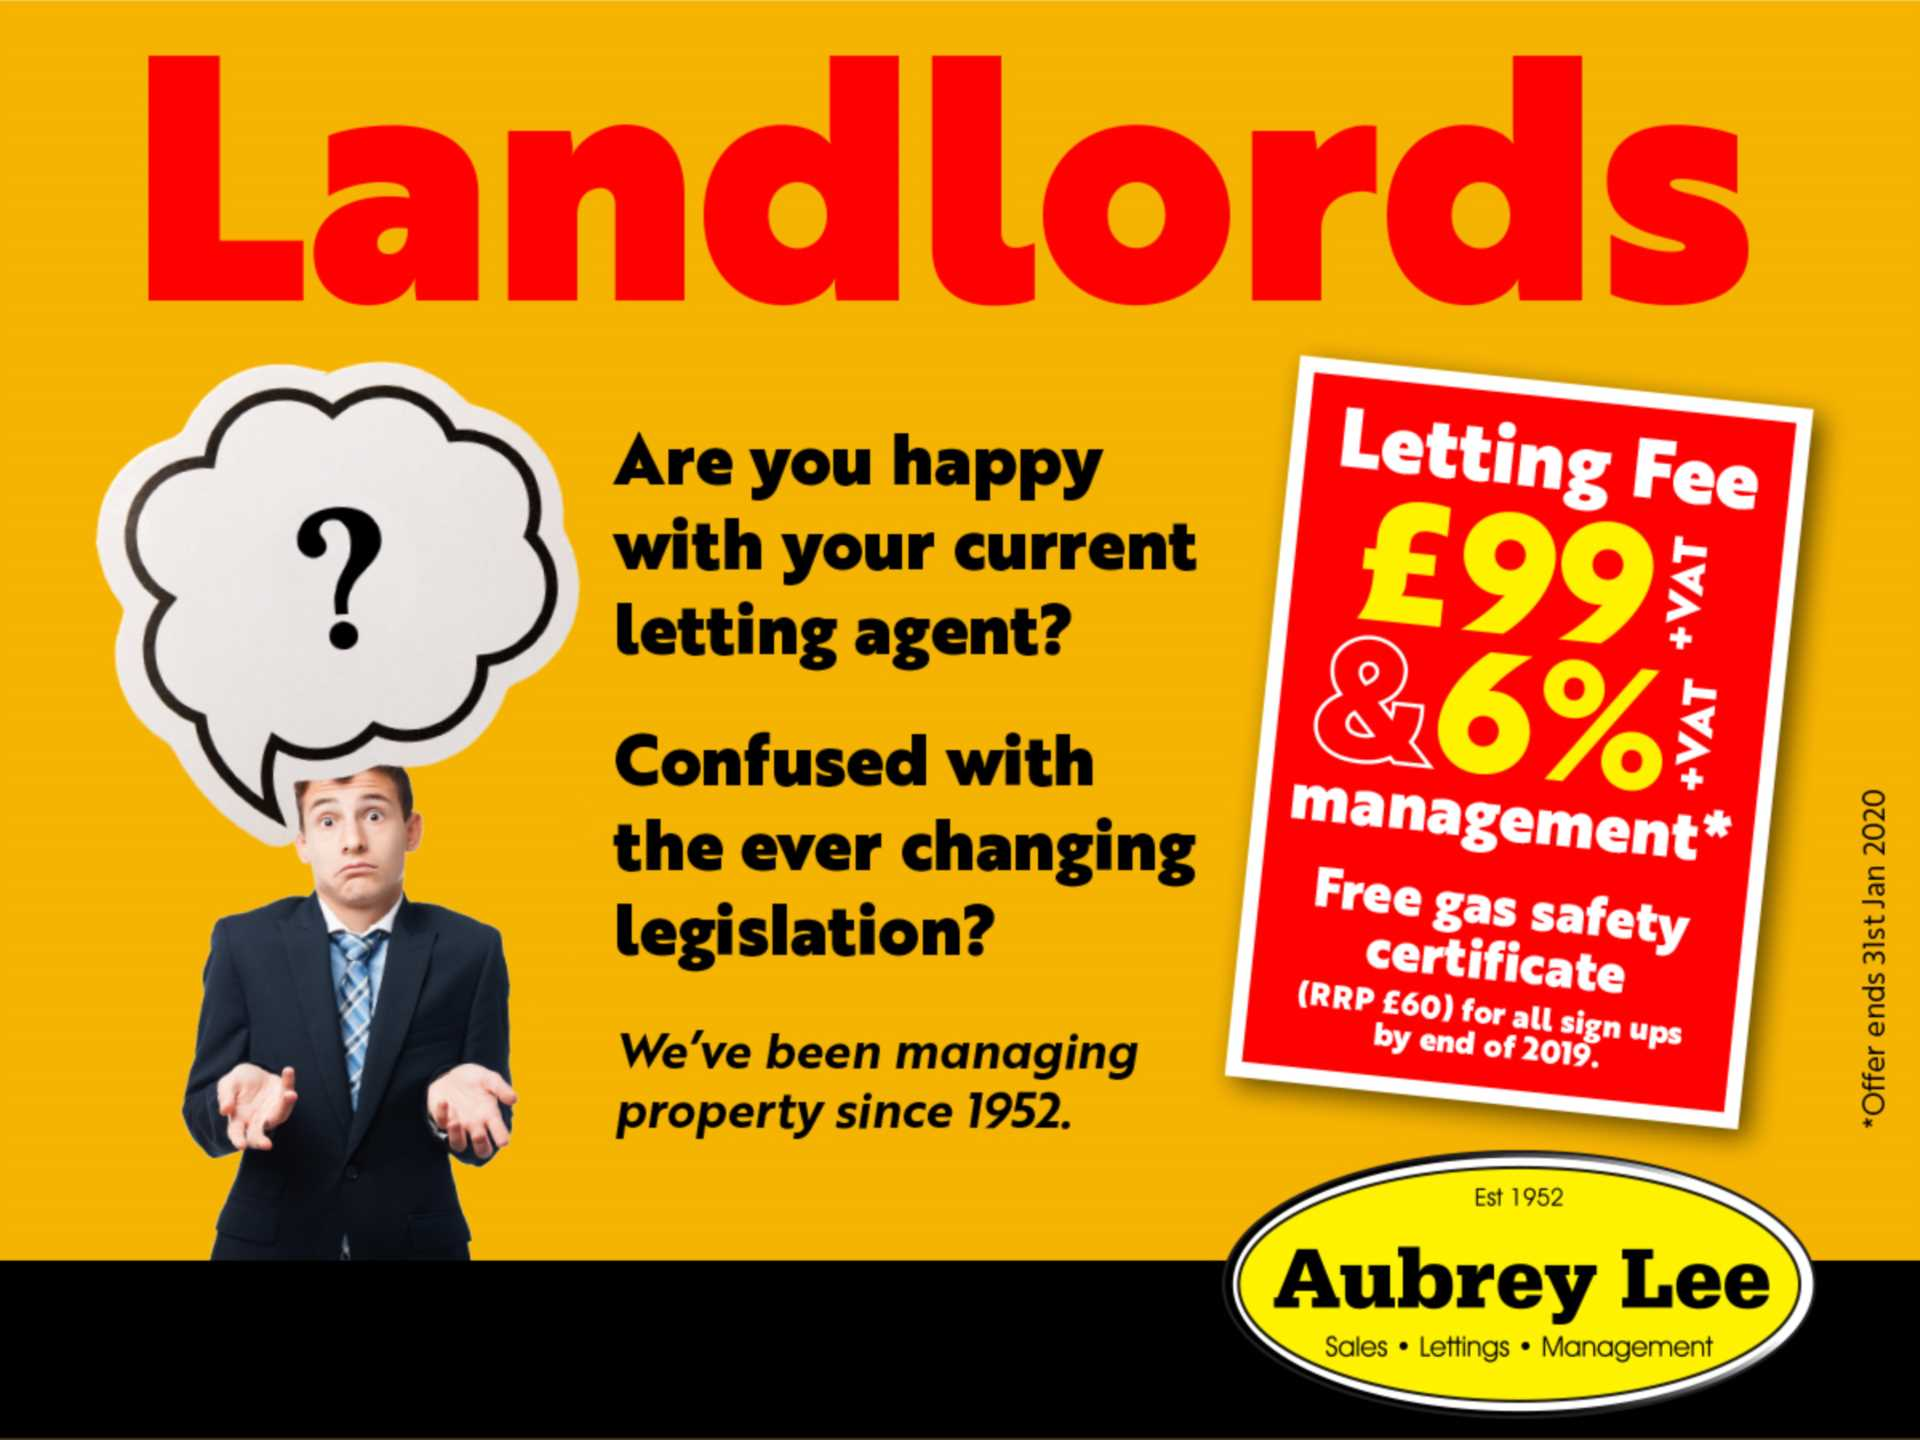 LANDLORDS PROMOTION